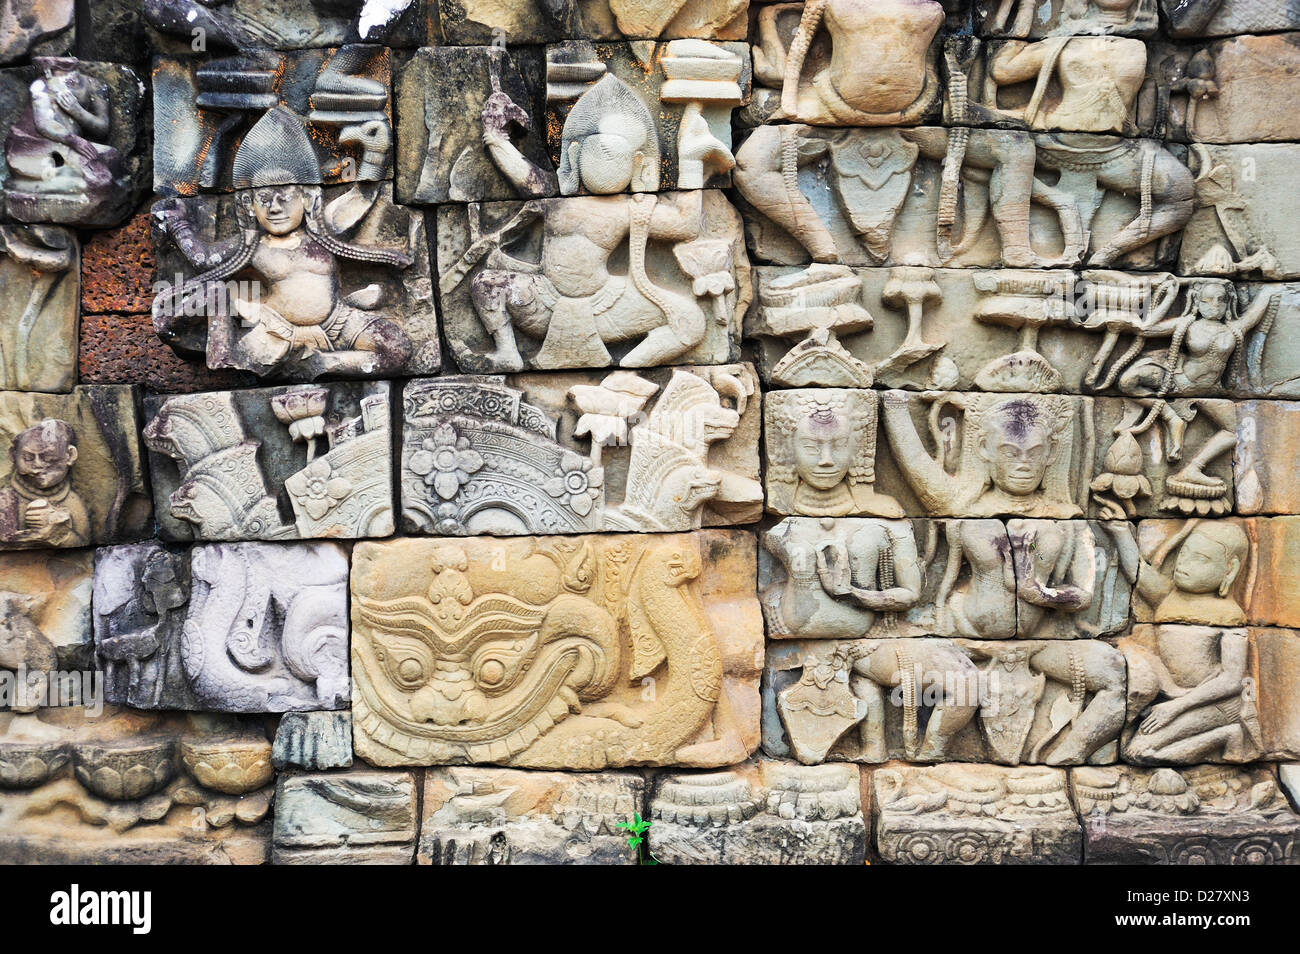 Reliefs at Elephant Terrace, Angkor Wat, Cambodia - Stock Image